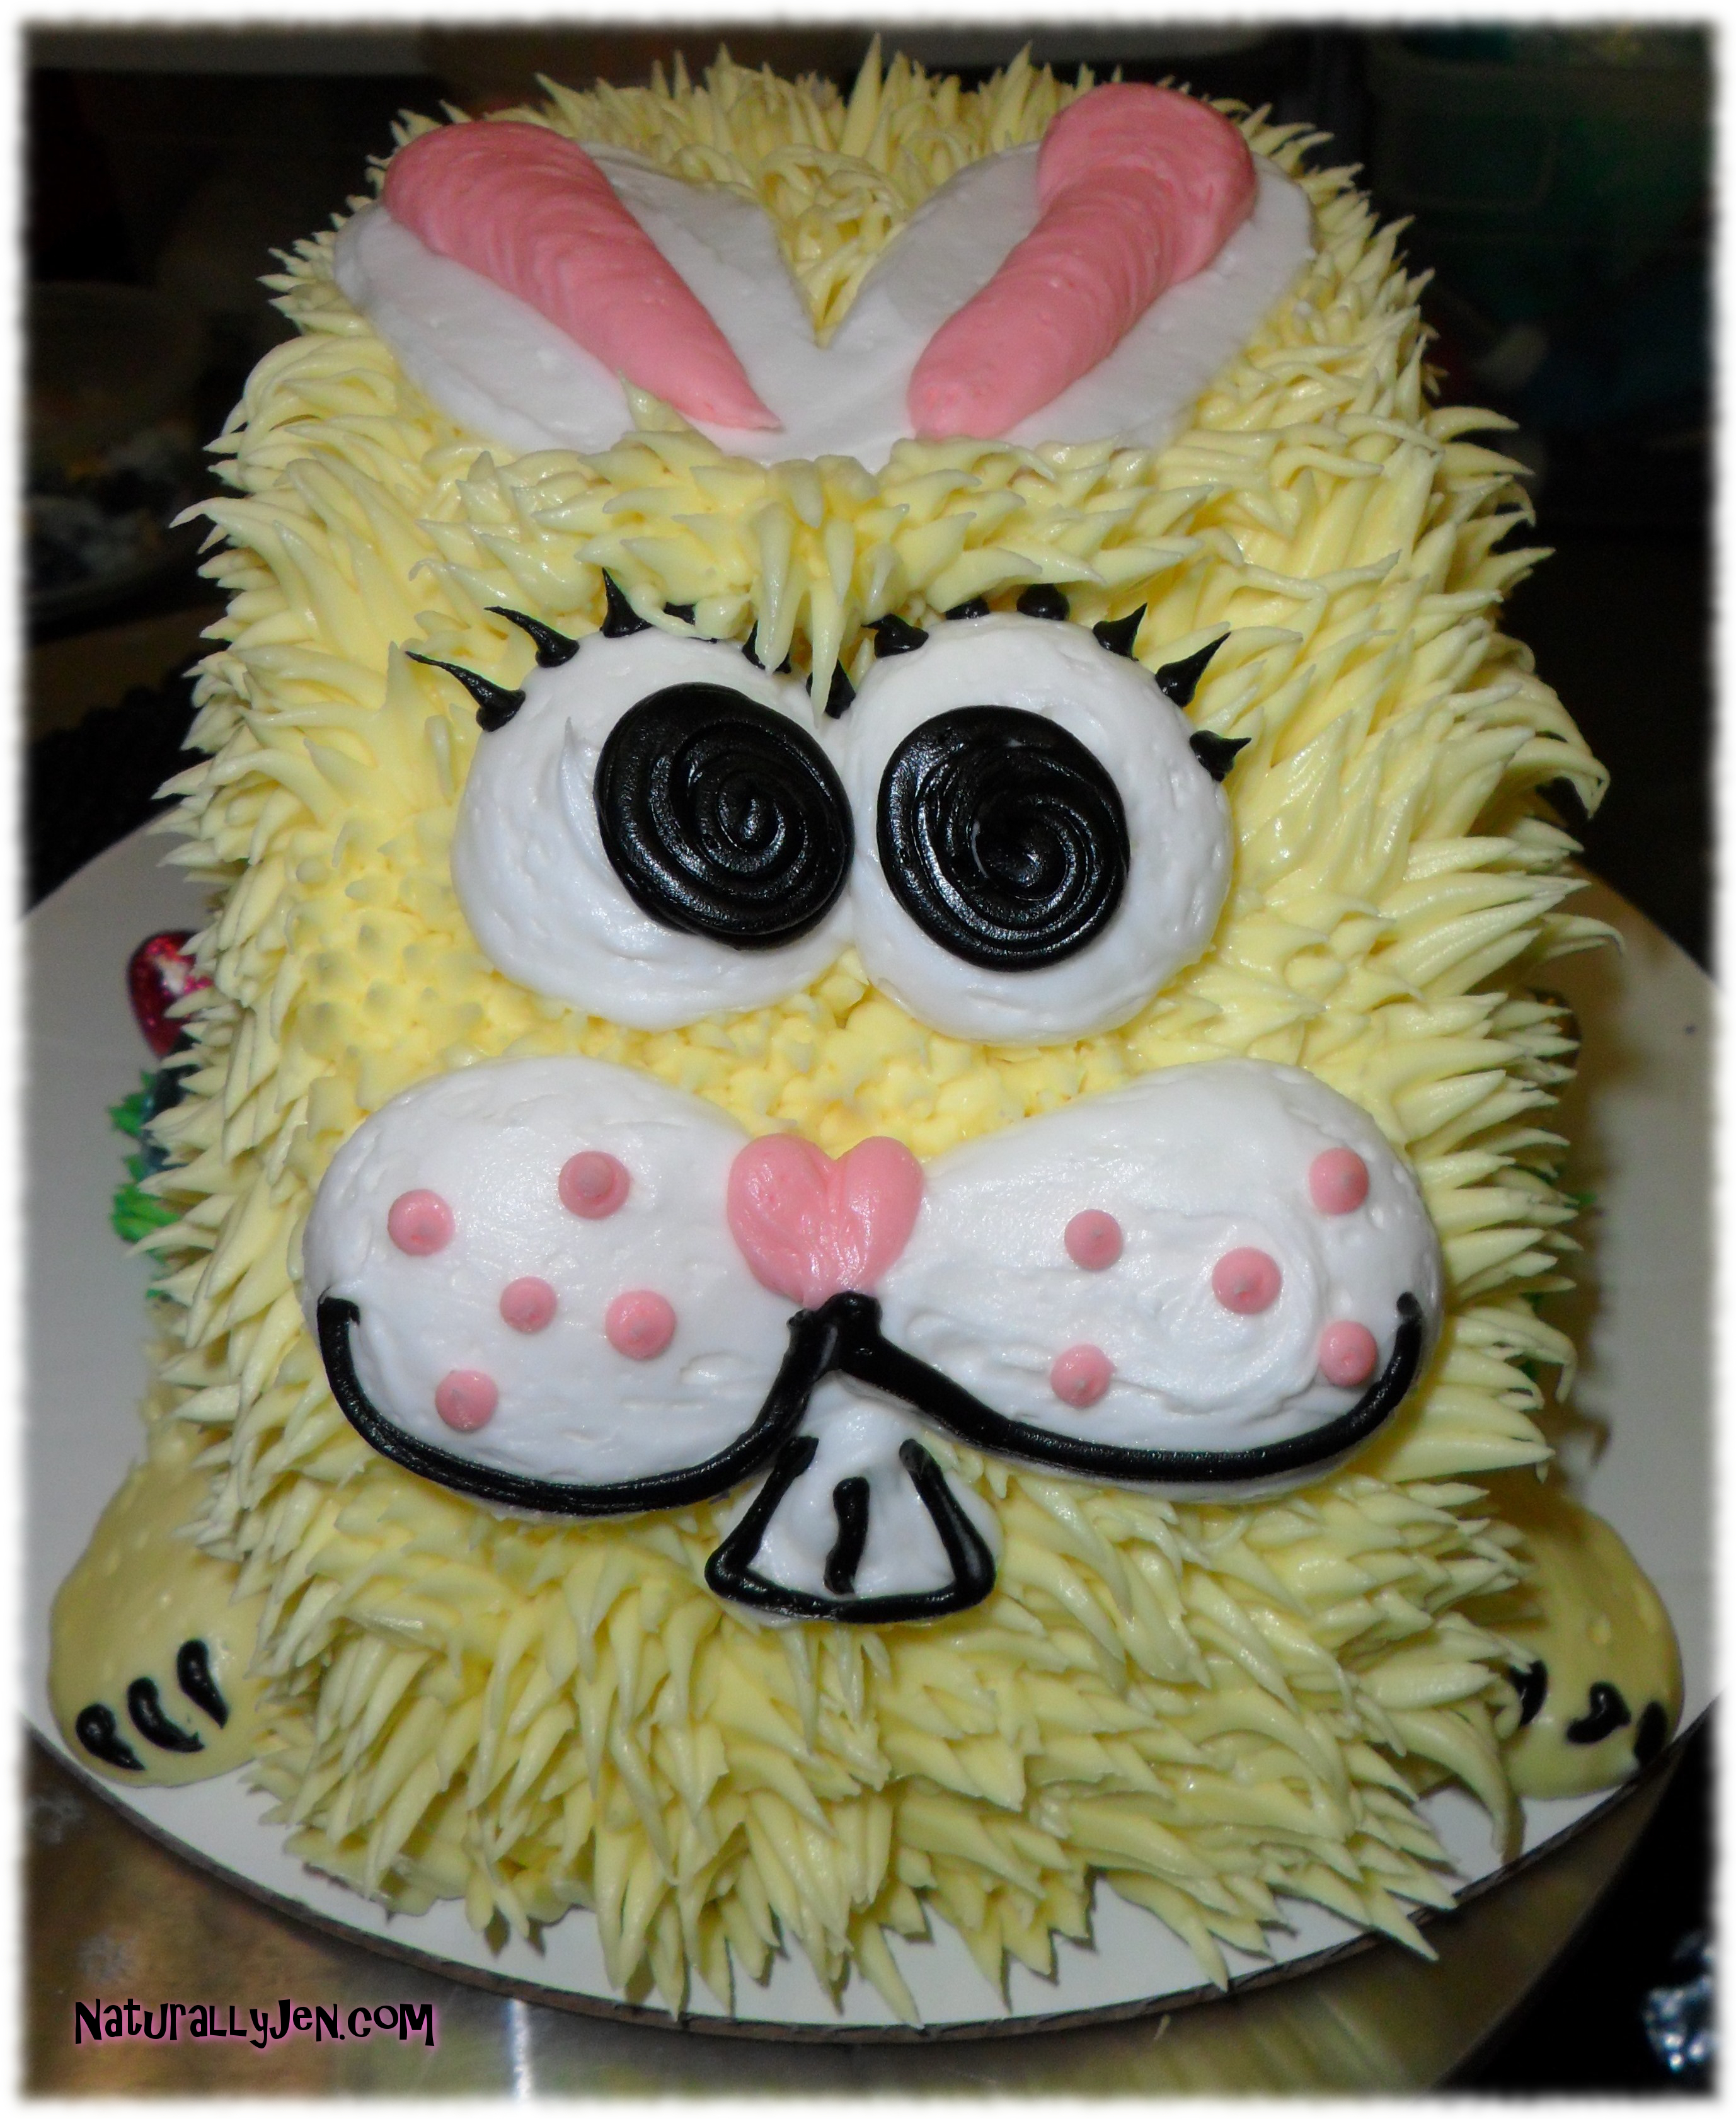 Shaped Easter Bunny Cake by Naturally Jen